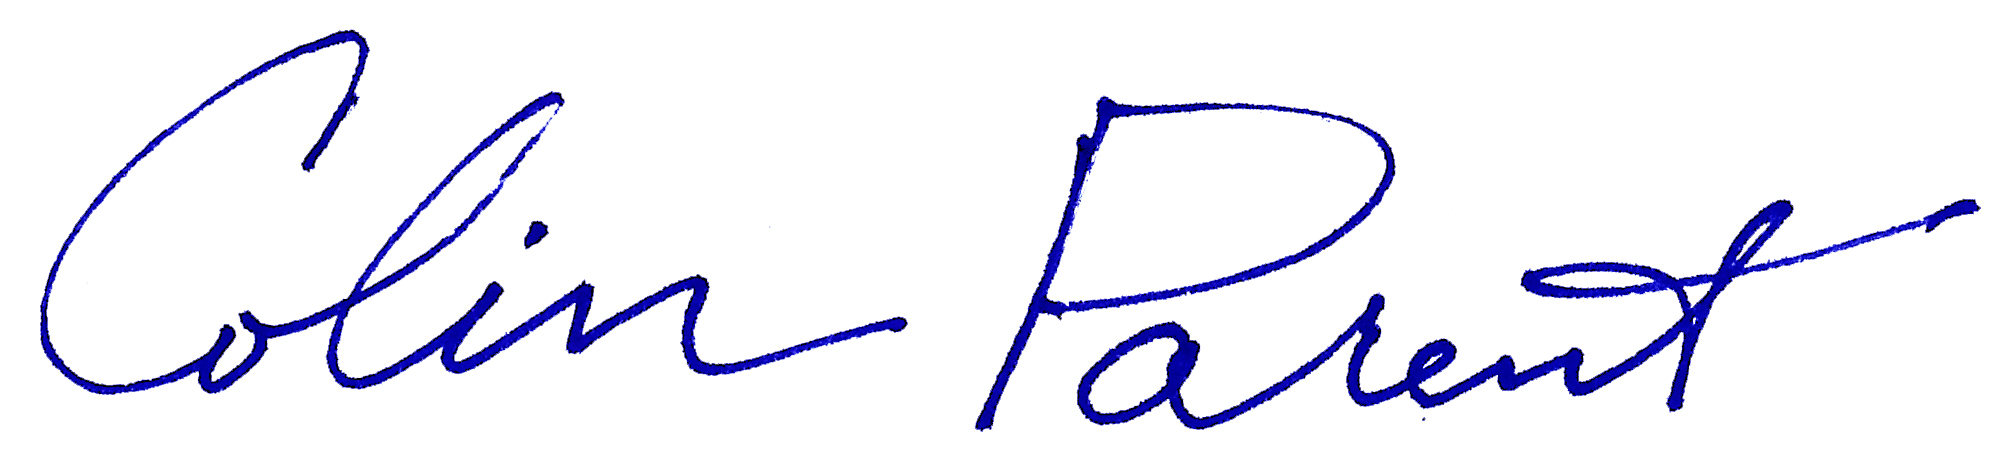 blue_signature_-_Transparent_copy.jpg